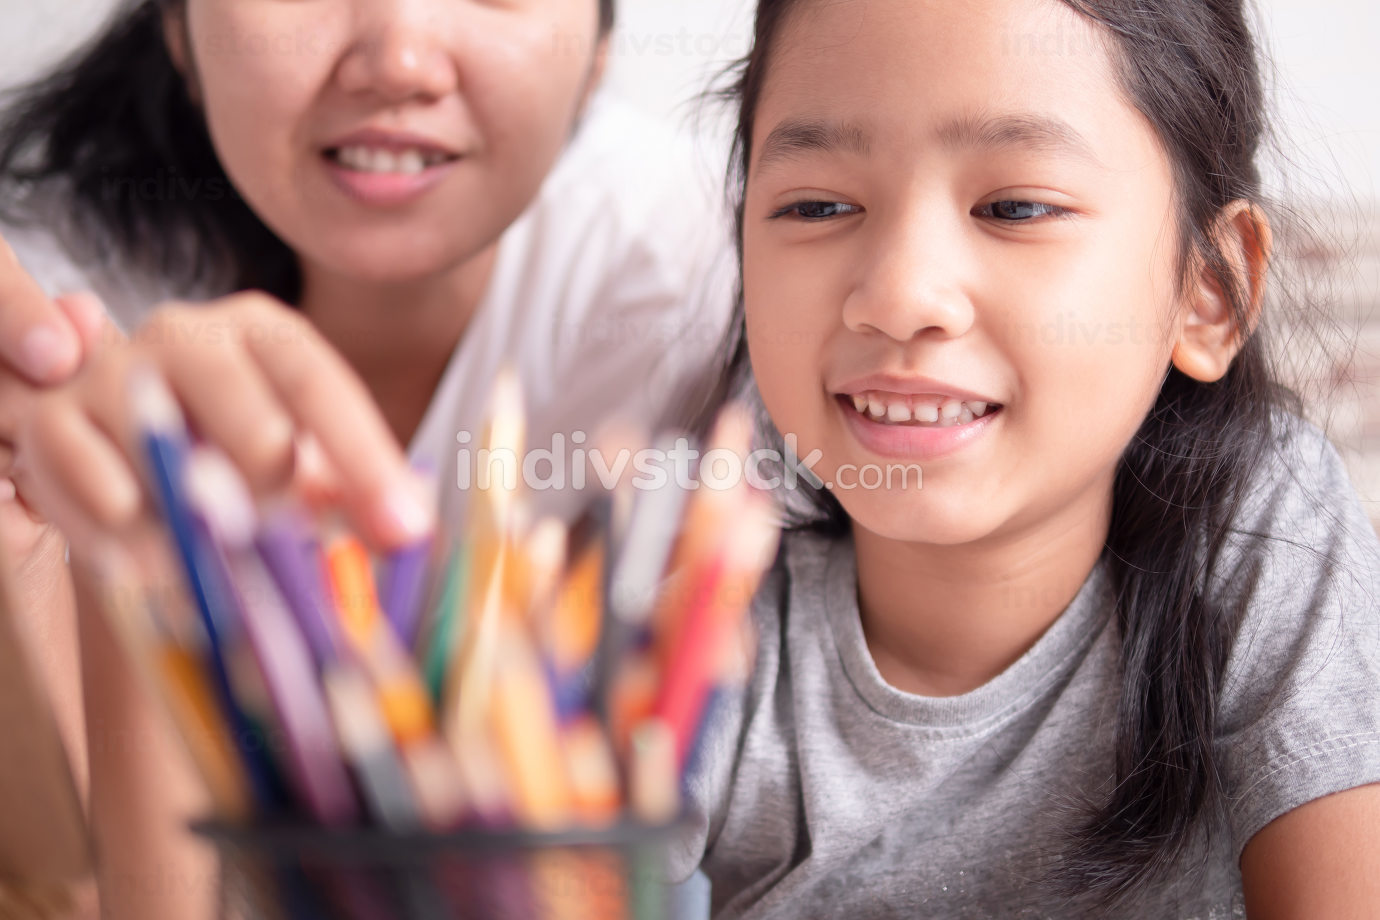 Asian little girl and a woman selecting a color